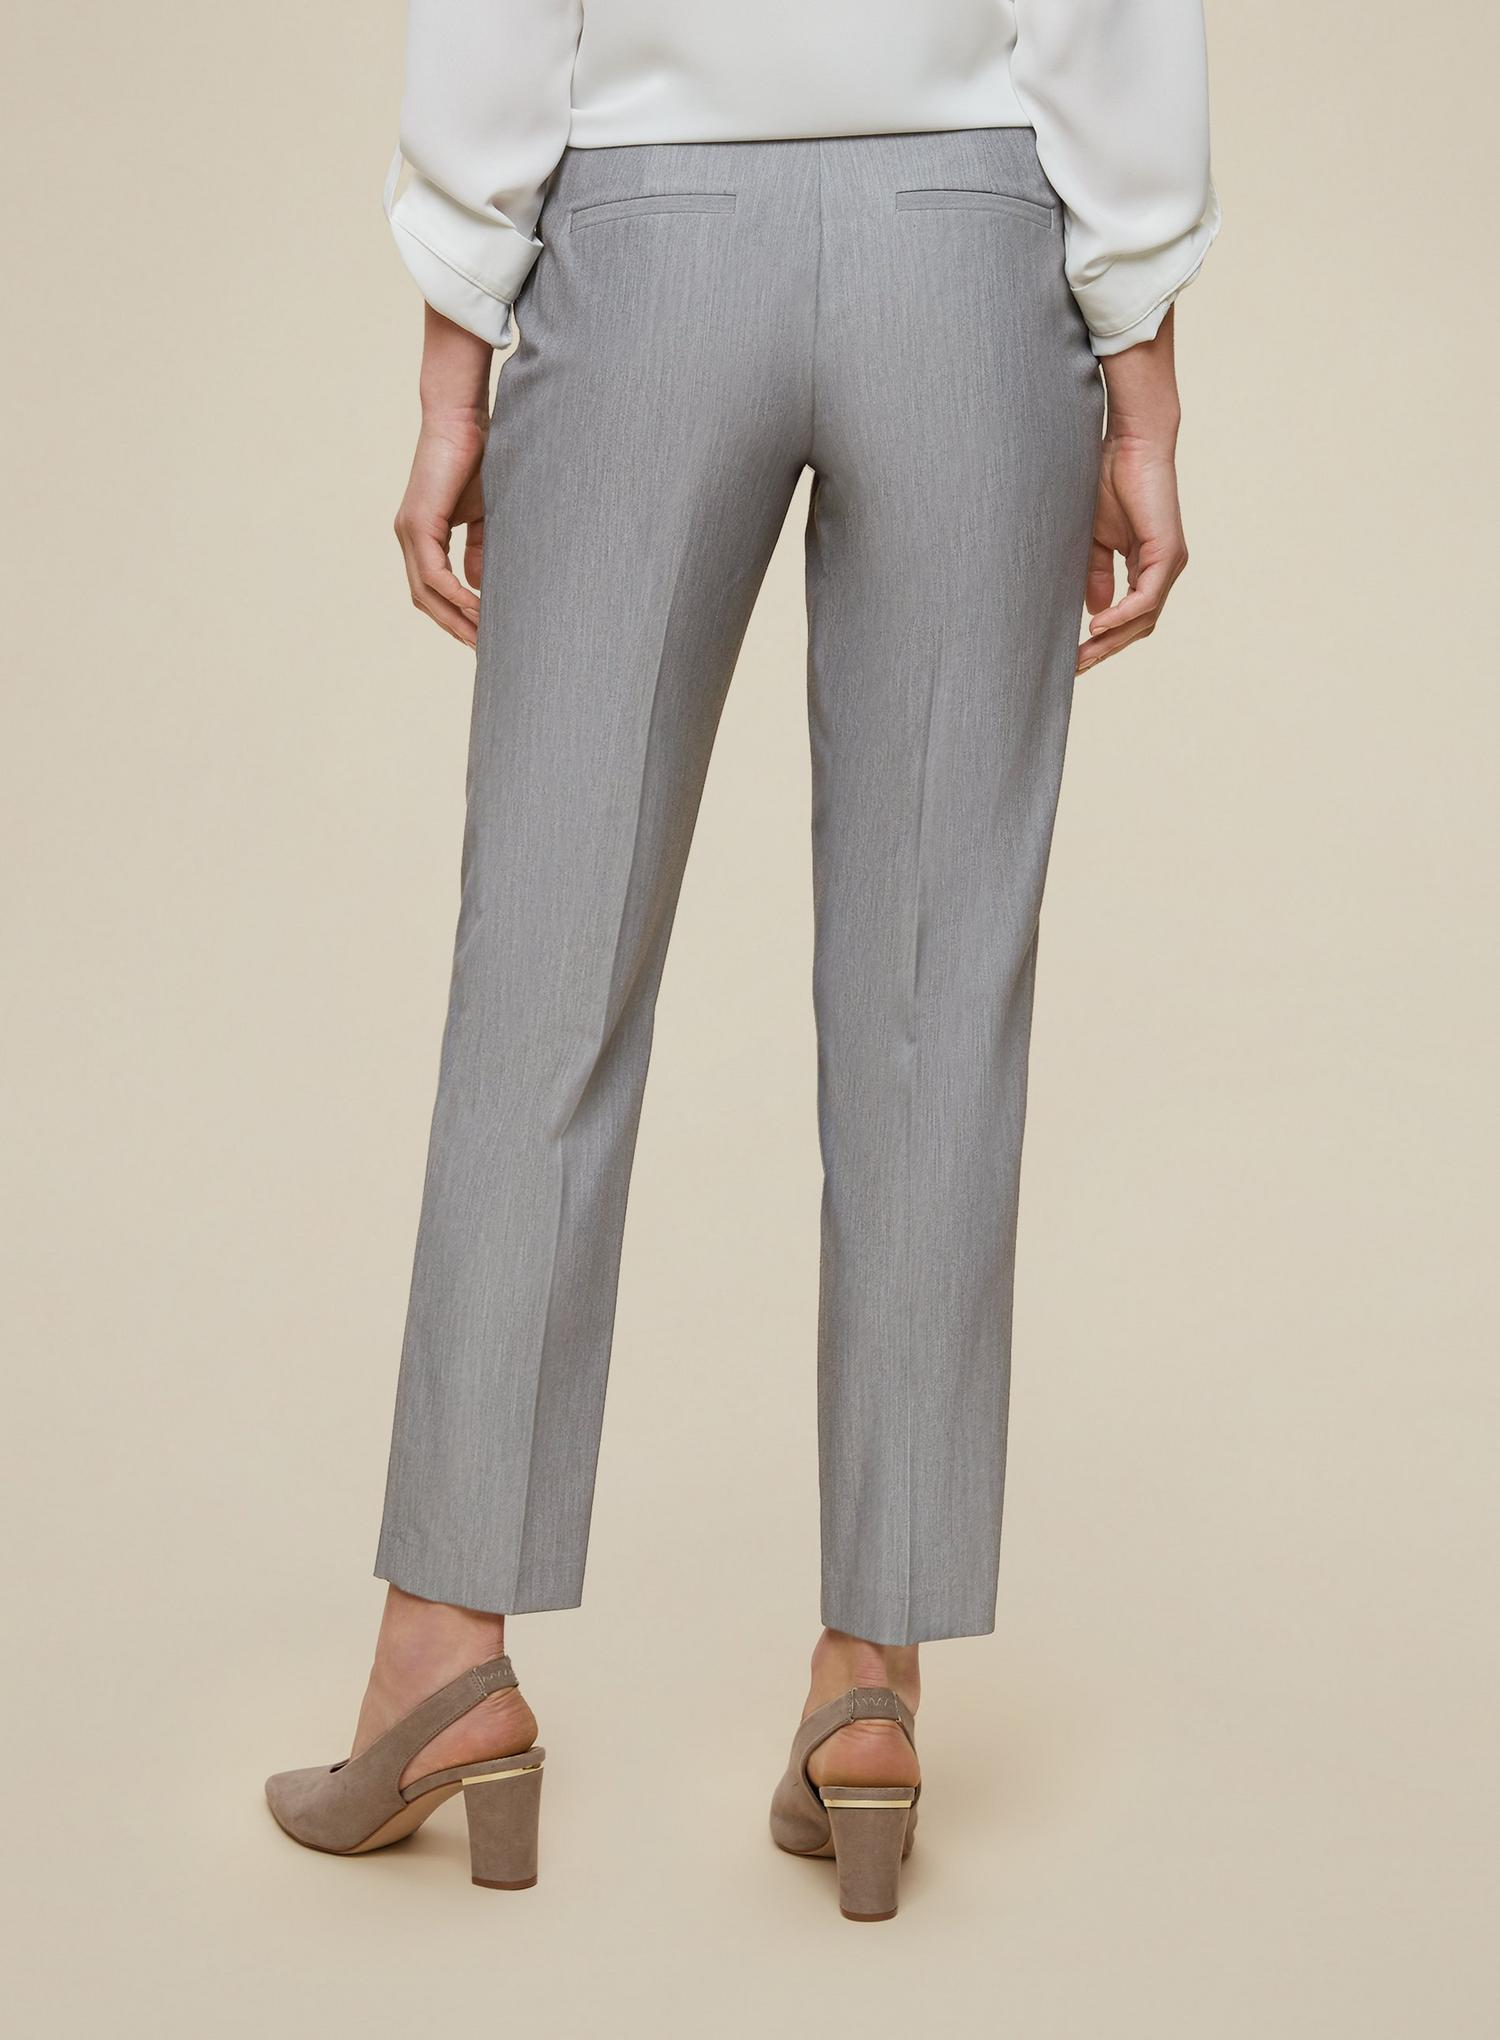 131 Tall Grey Tailored Trousers image number 2